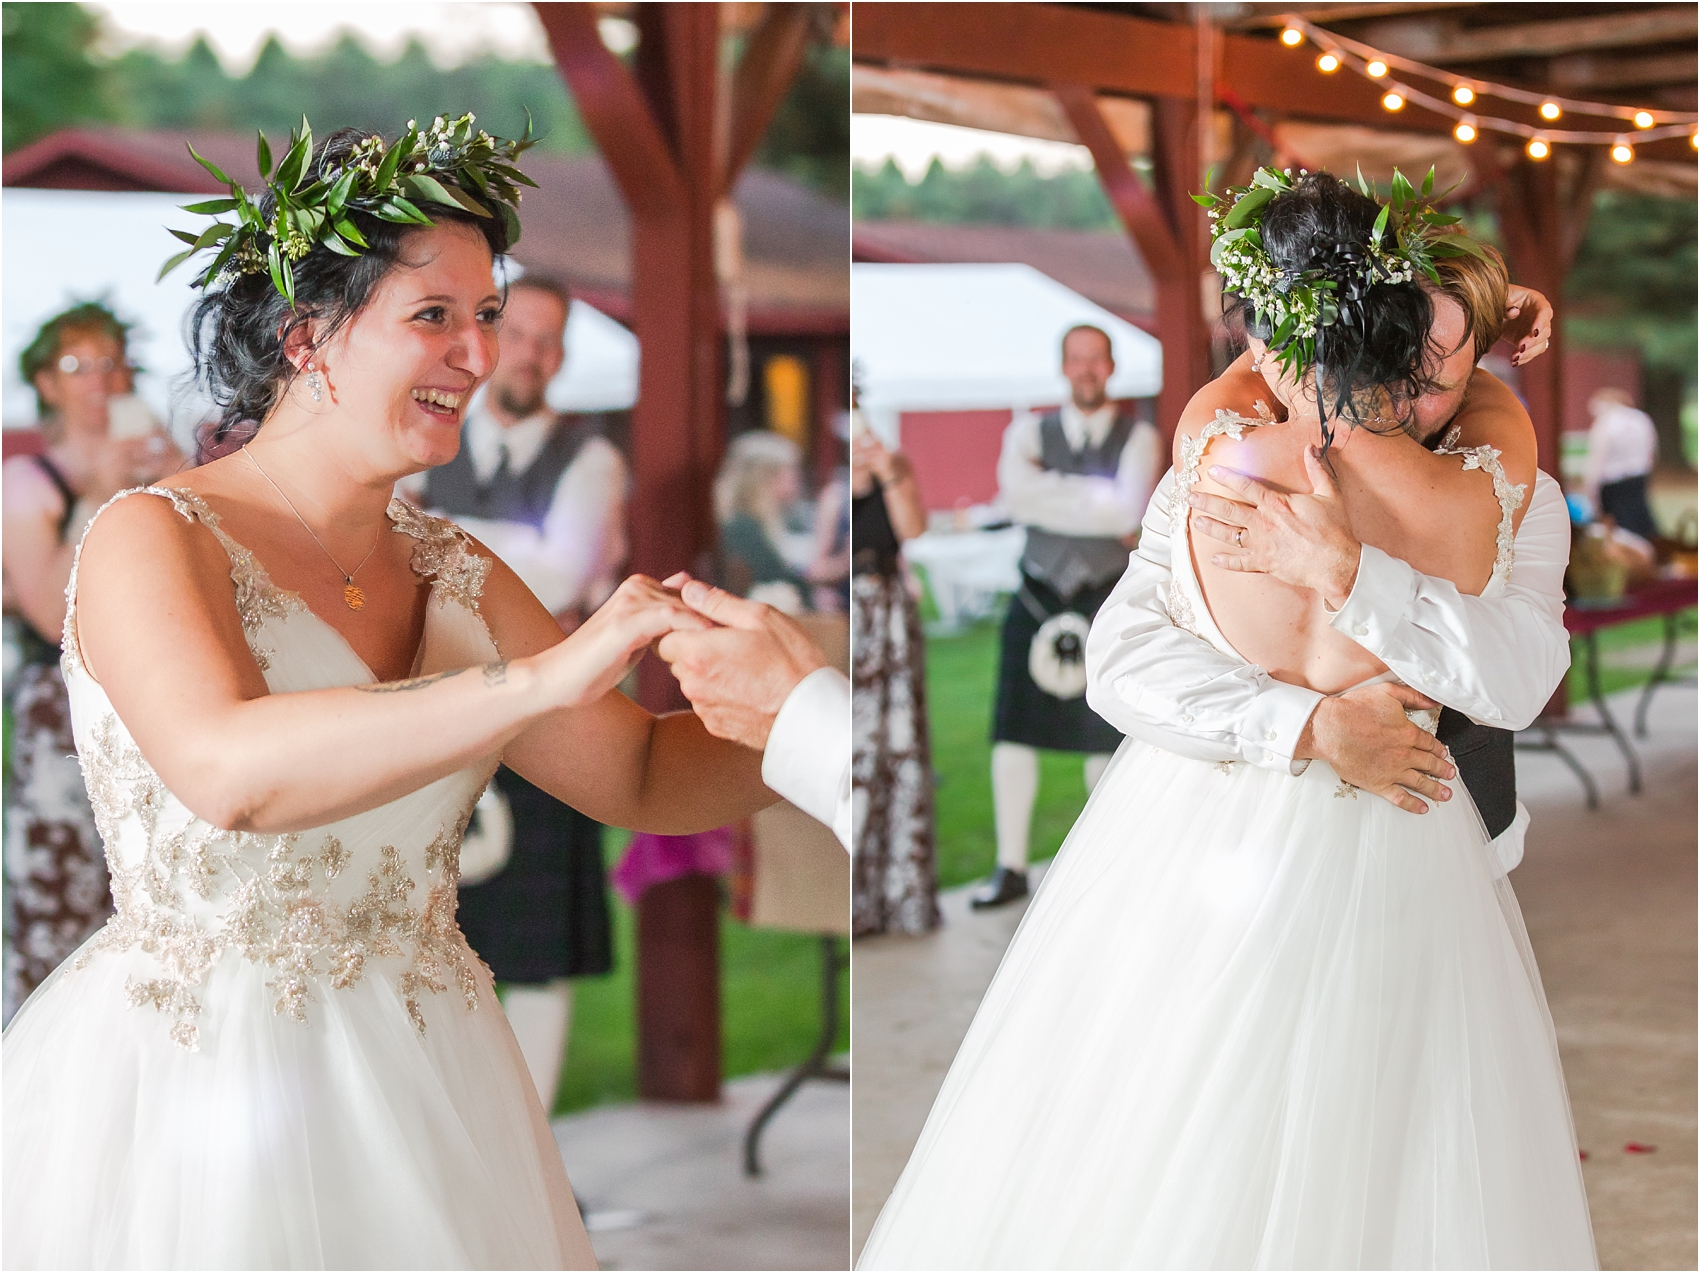 scottish-inspired-wedding-photos-in-the-country-in-port-sanilac-michigan-by-courtney-carolyn-photography_0058.jpg